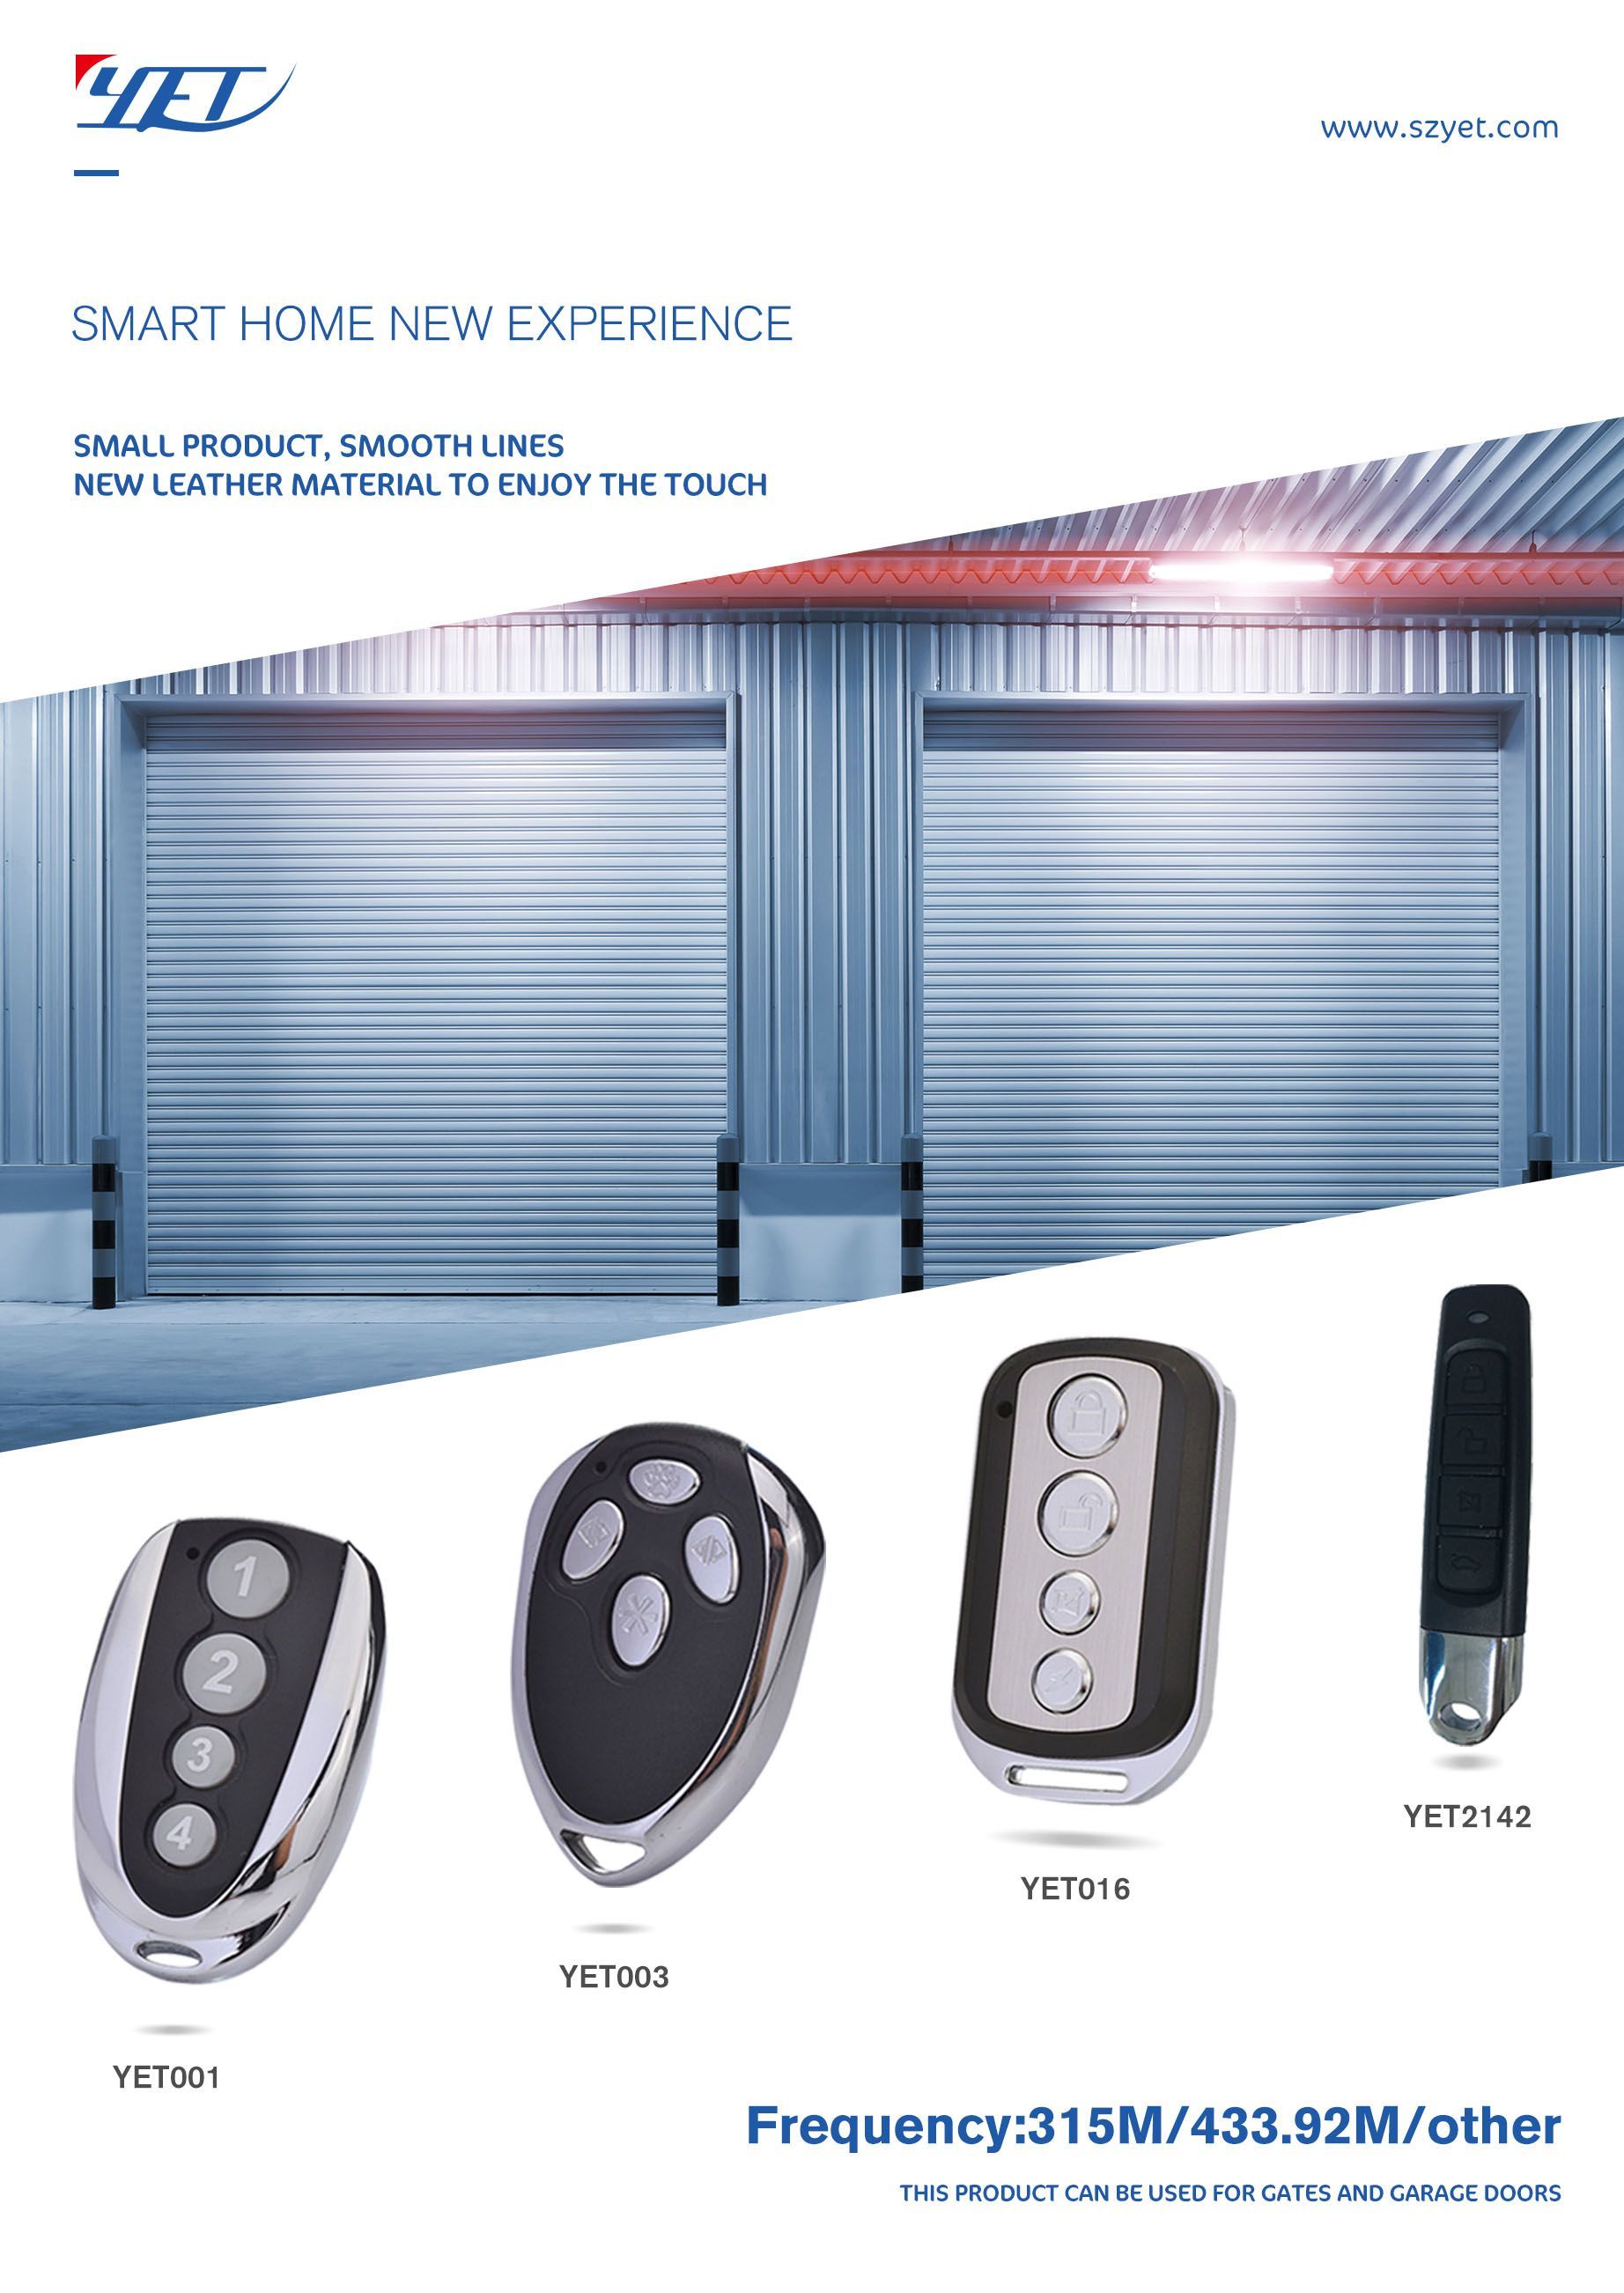 Garage Door Dedicated Remote Controls The Number Of Buttons And